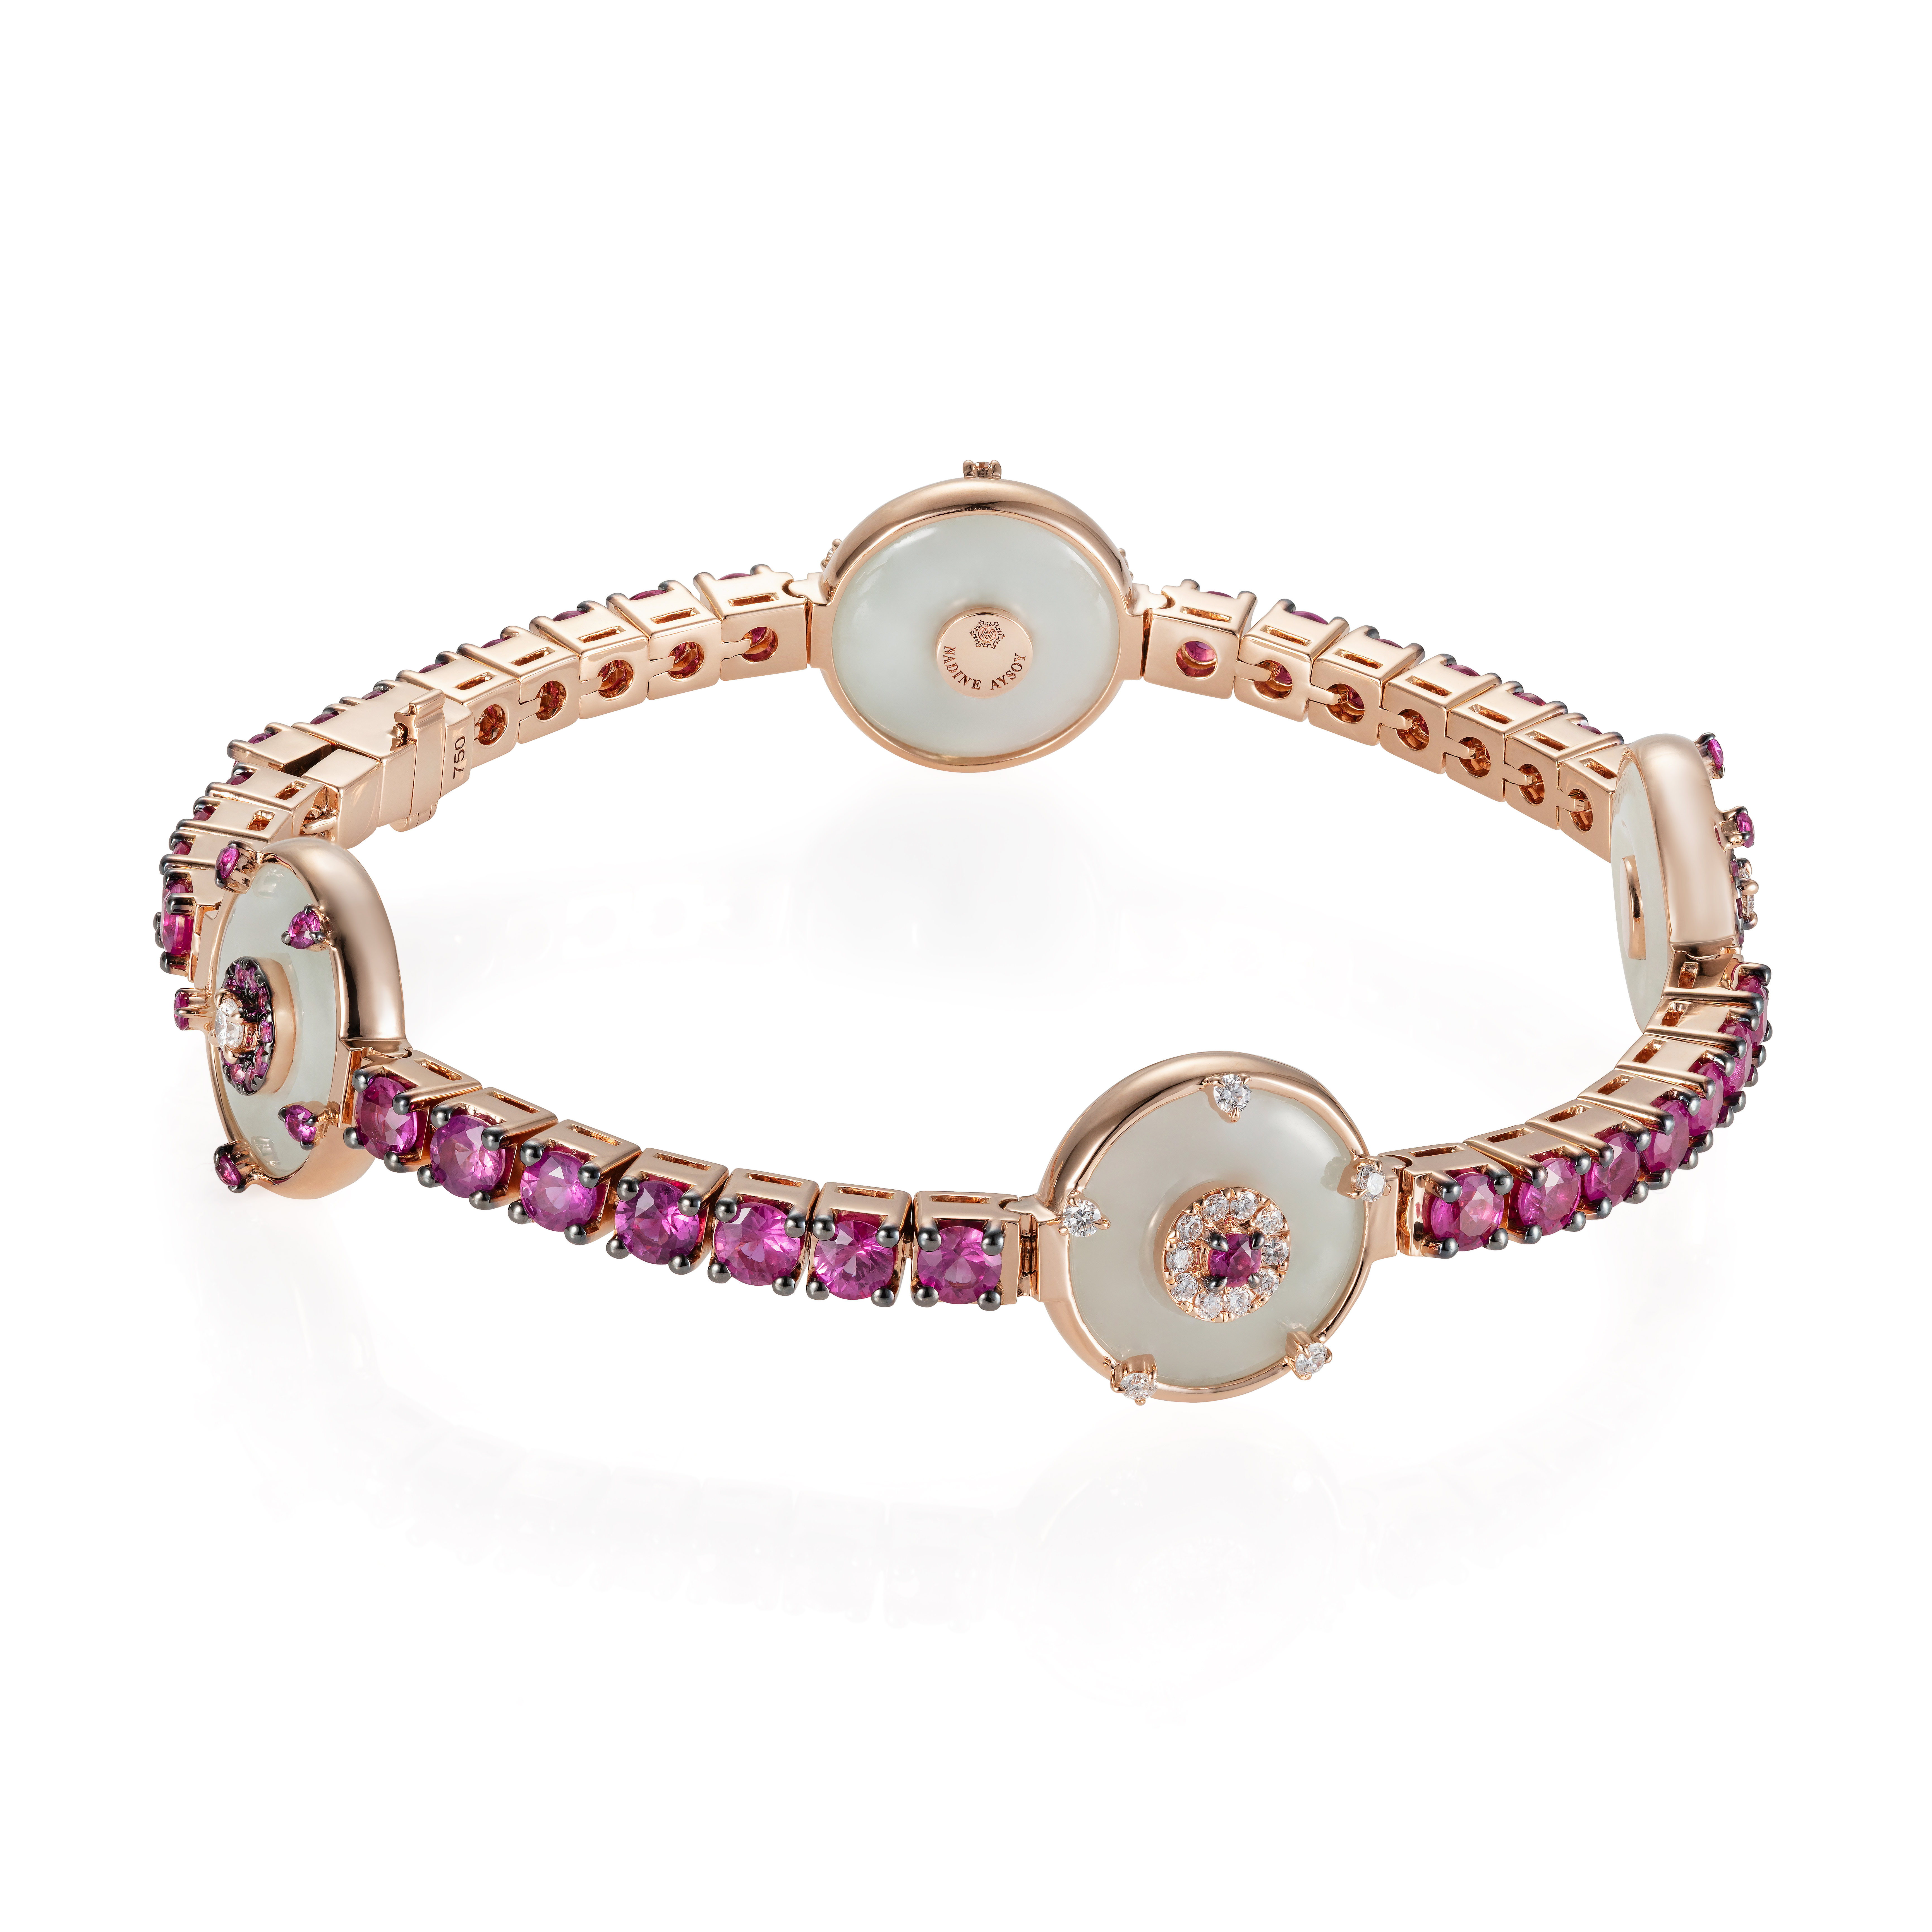 Celeste Pink Sapphire and Jade Bracelet by Nadine Aysoy on curated-crowd.com